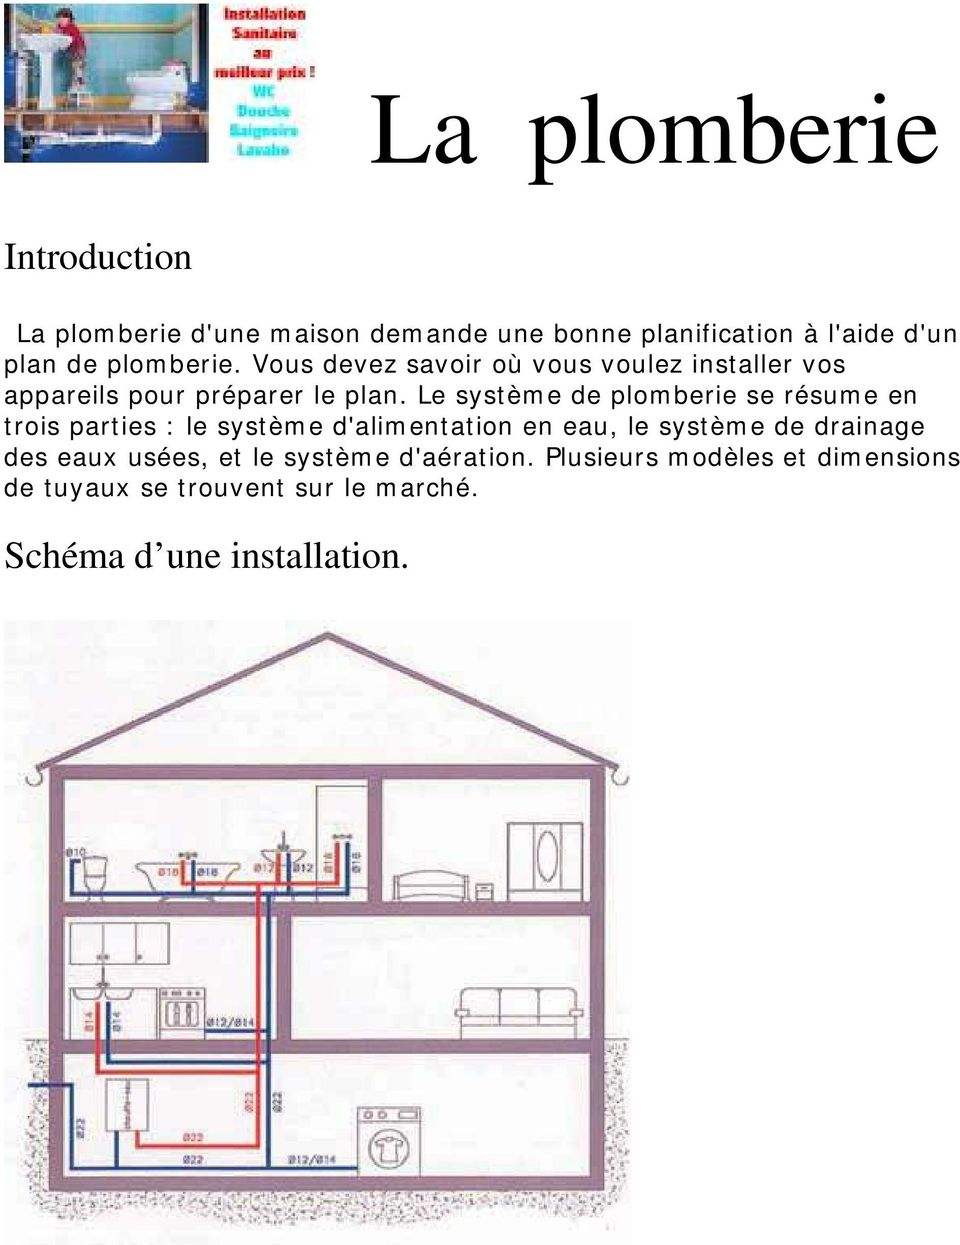 la plomberie introduction sch ma d une installation pdf. Black Bedroom Furniture Sets. Home Design Ideas